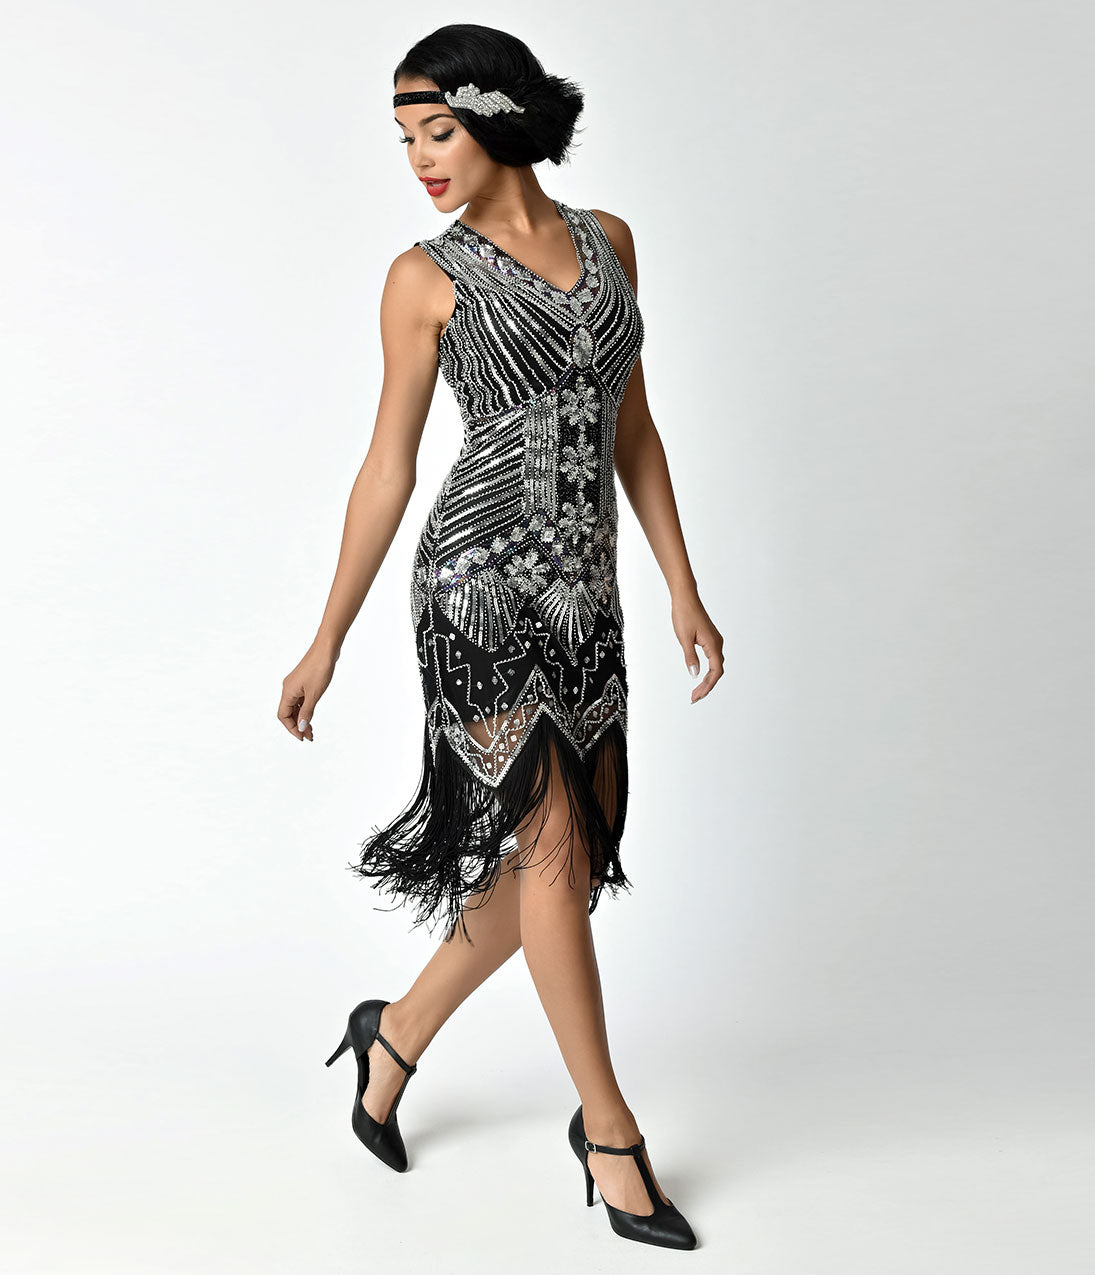 Gangster Costumes & Outfits | Women's and Men's Unique Vintage 1920S Deco Silver  Black Veronique Fringe Flapper Dress $98.00 AT vintagedancer.com